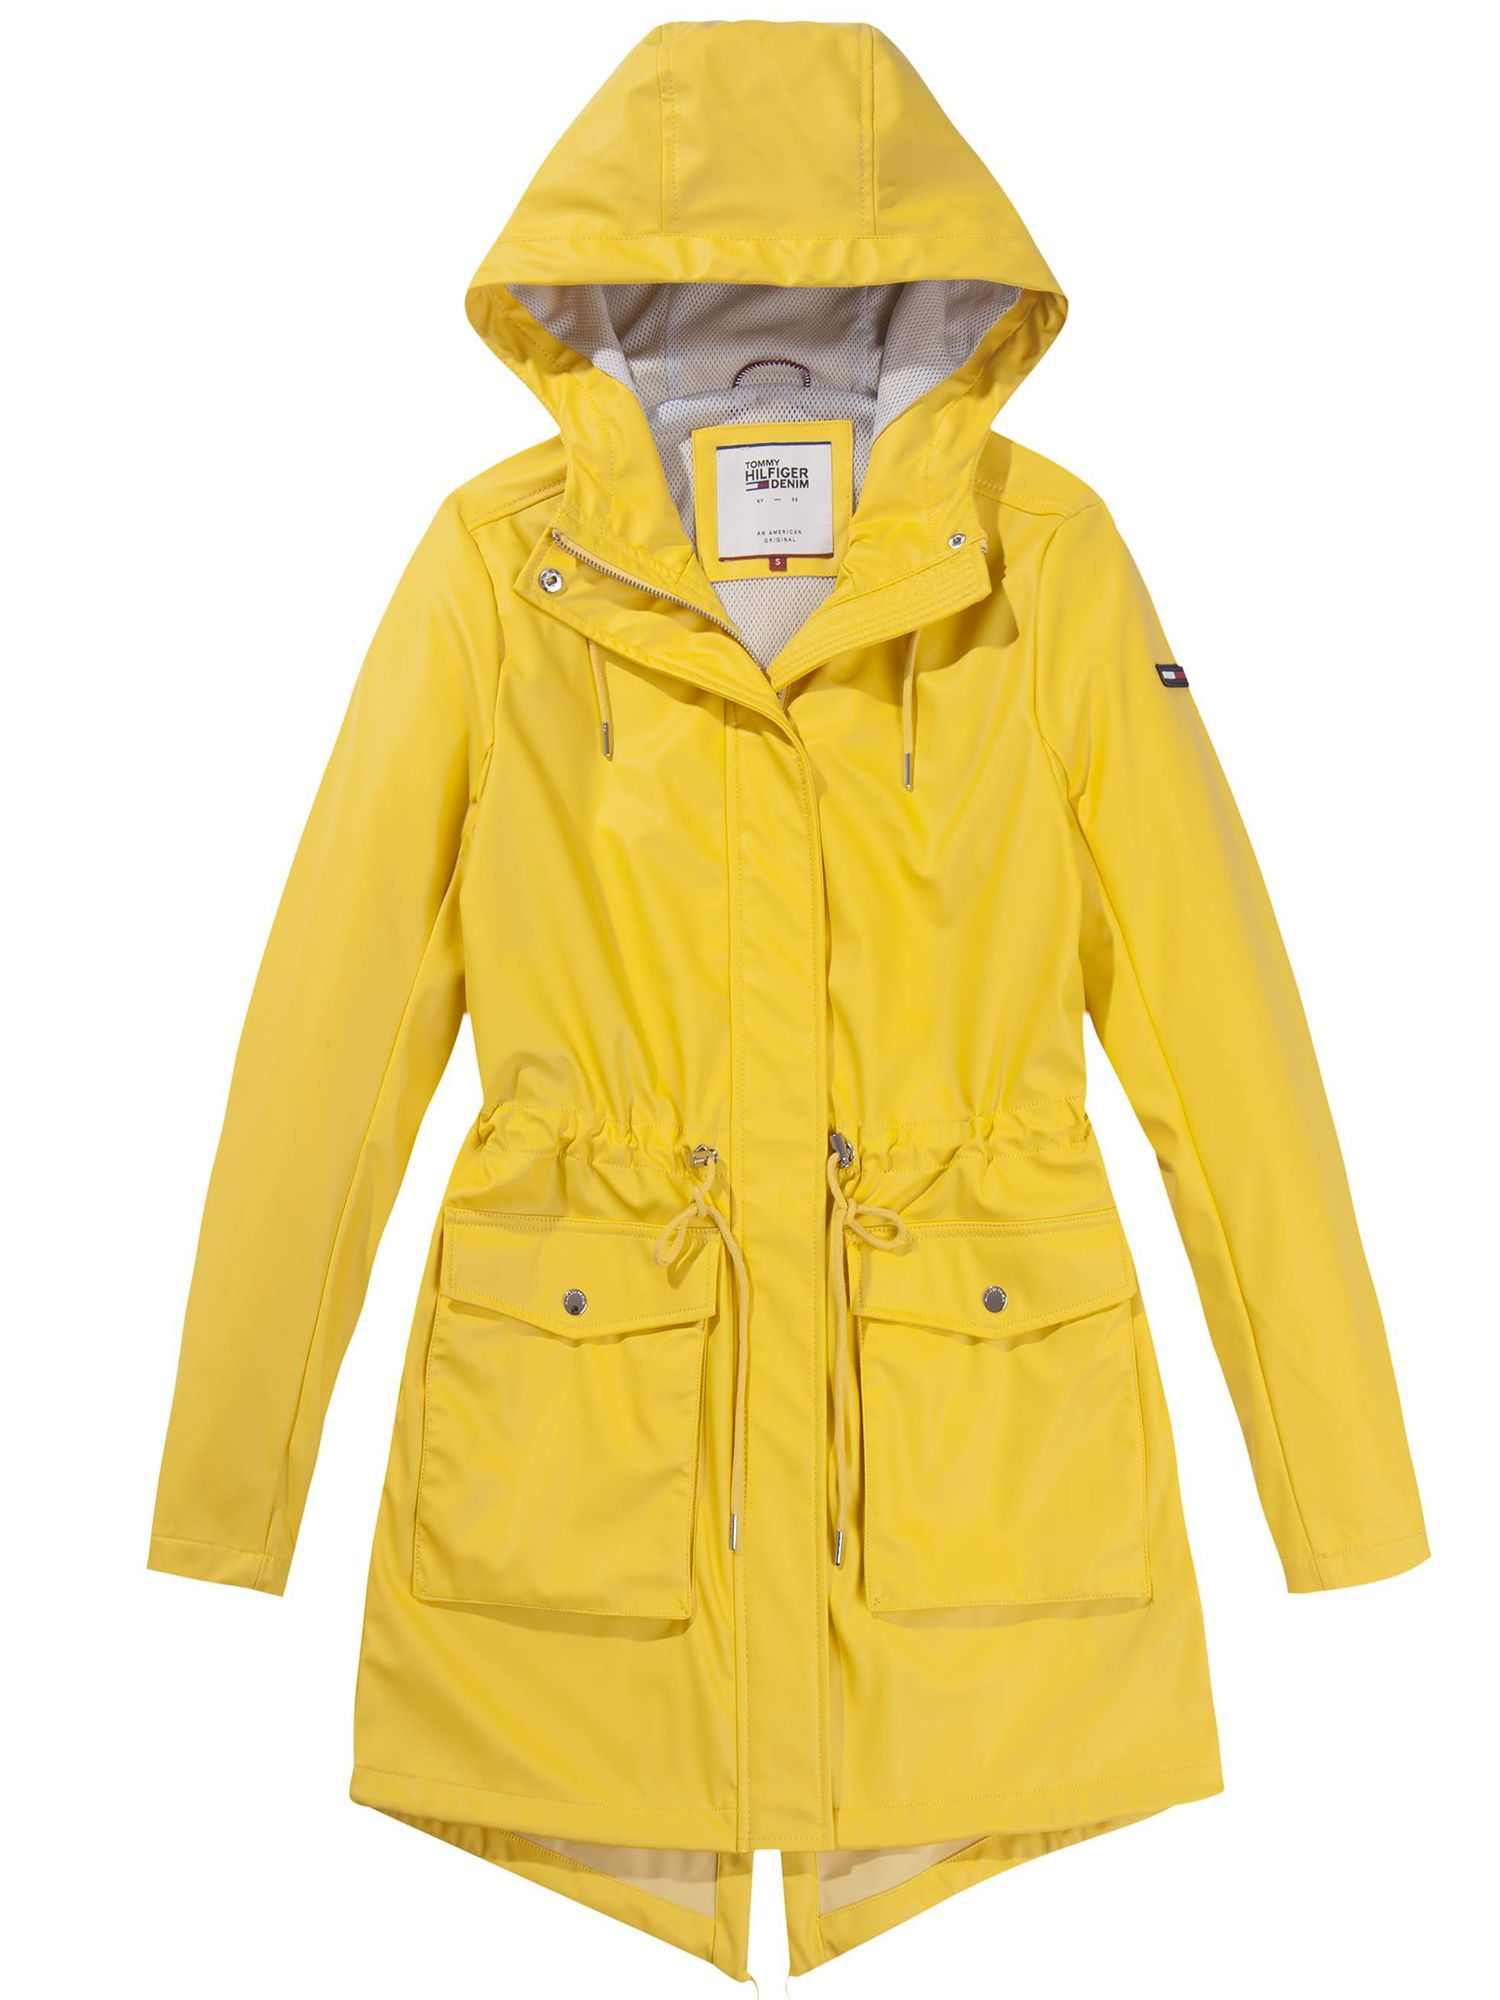 Tommy Hilfiger Parka Jacket, Yellow